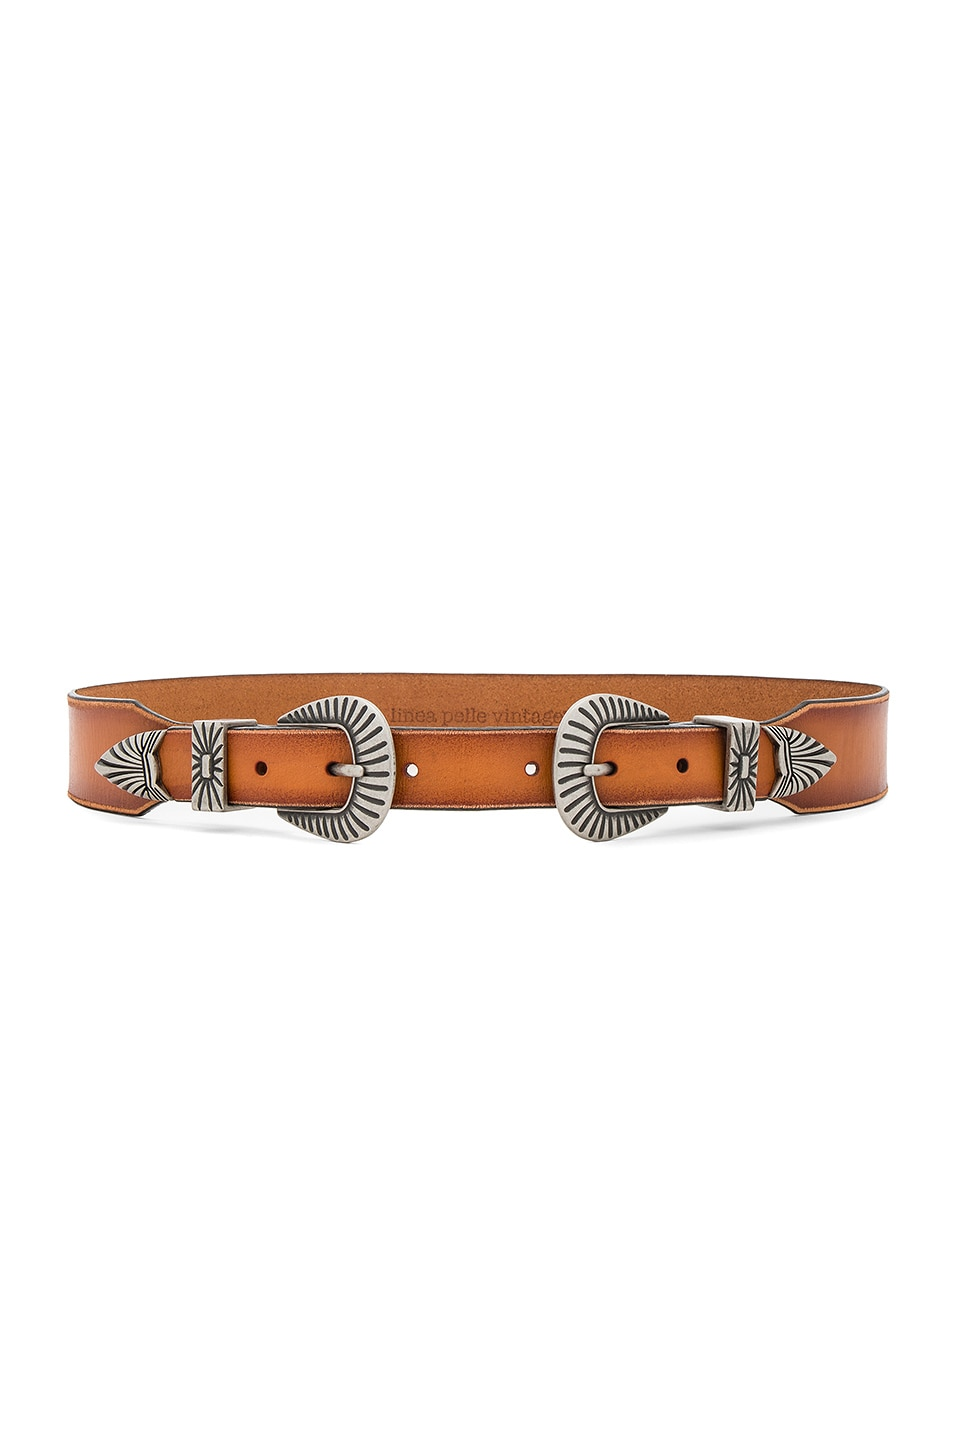 Linea Pelle Western Double Buckle Belt in Cognac & Silver